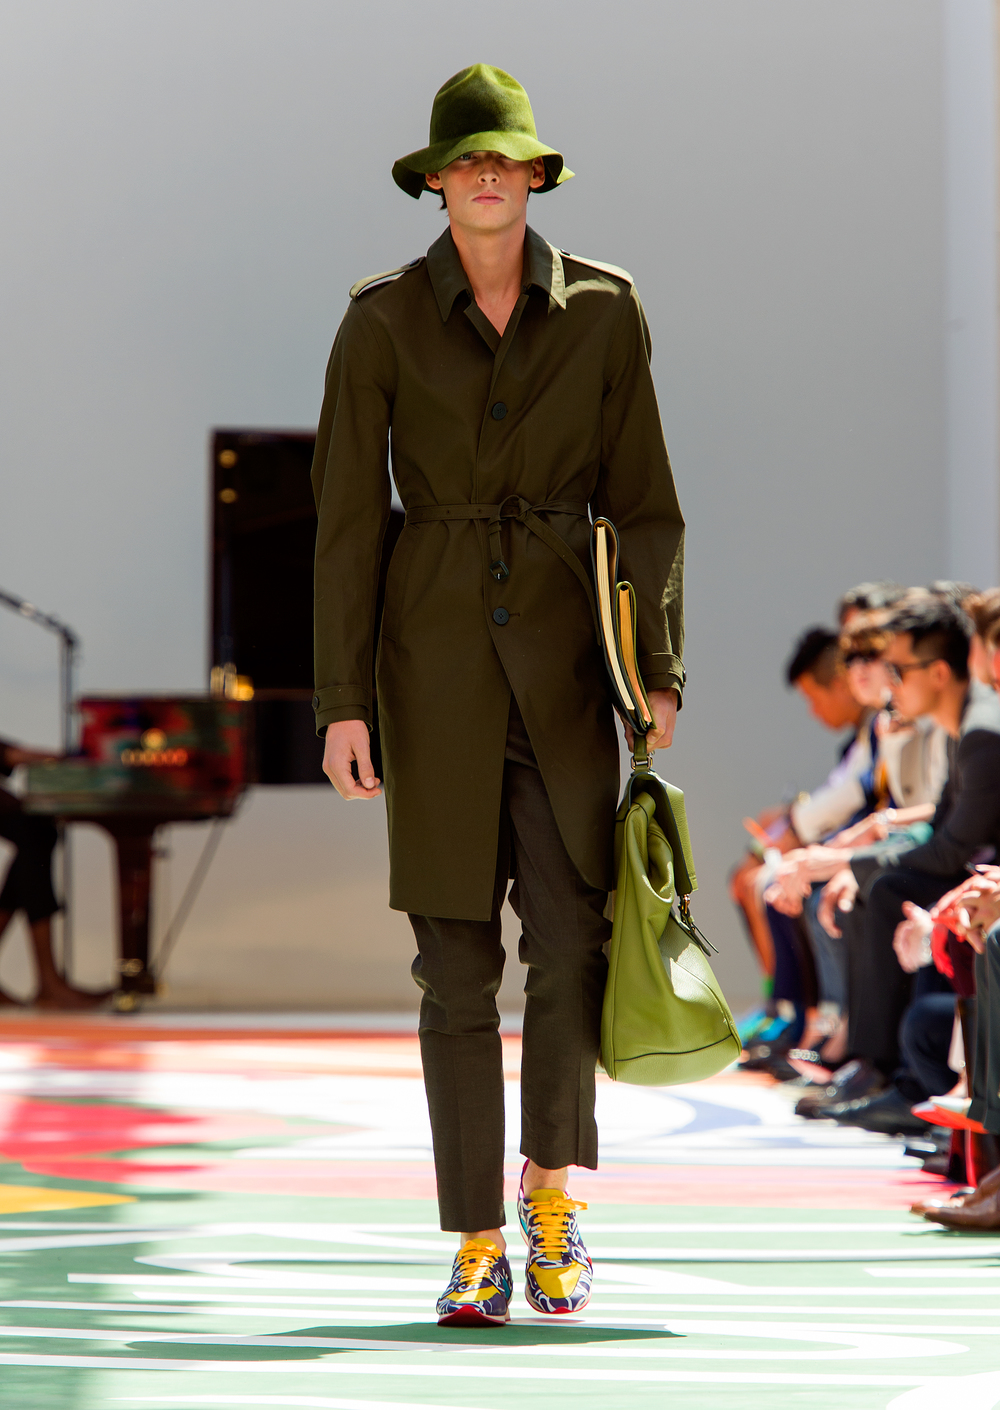 Burberry Prorsum Menswear Spring Summer 2015 Collection - Look 30.jpg